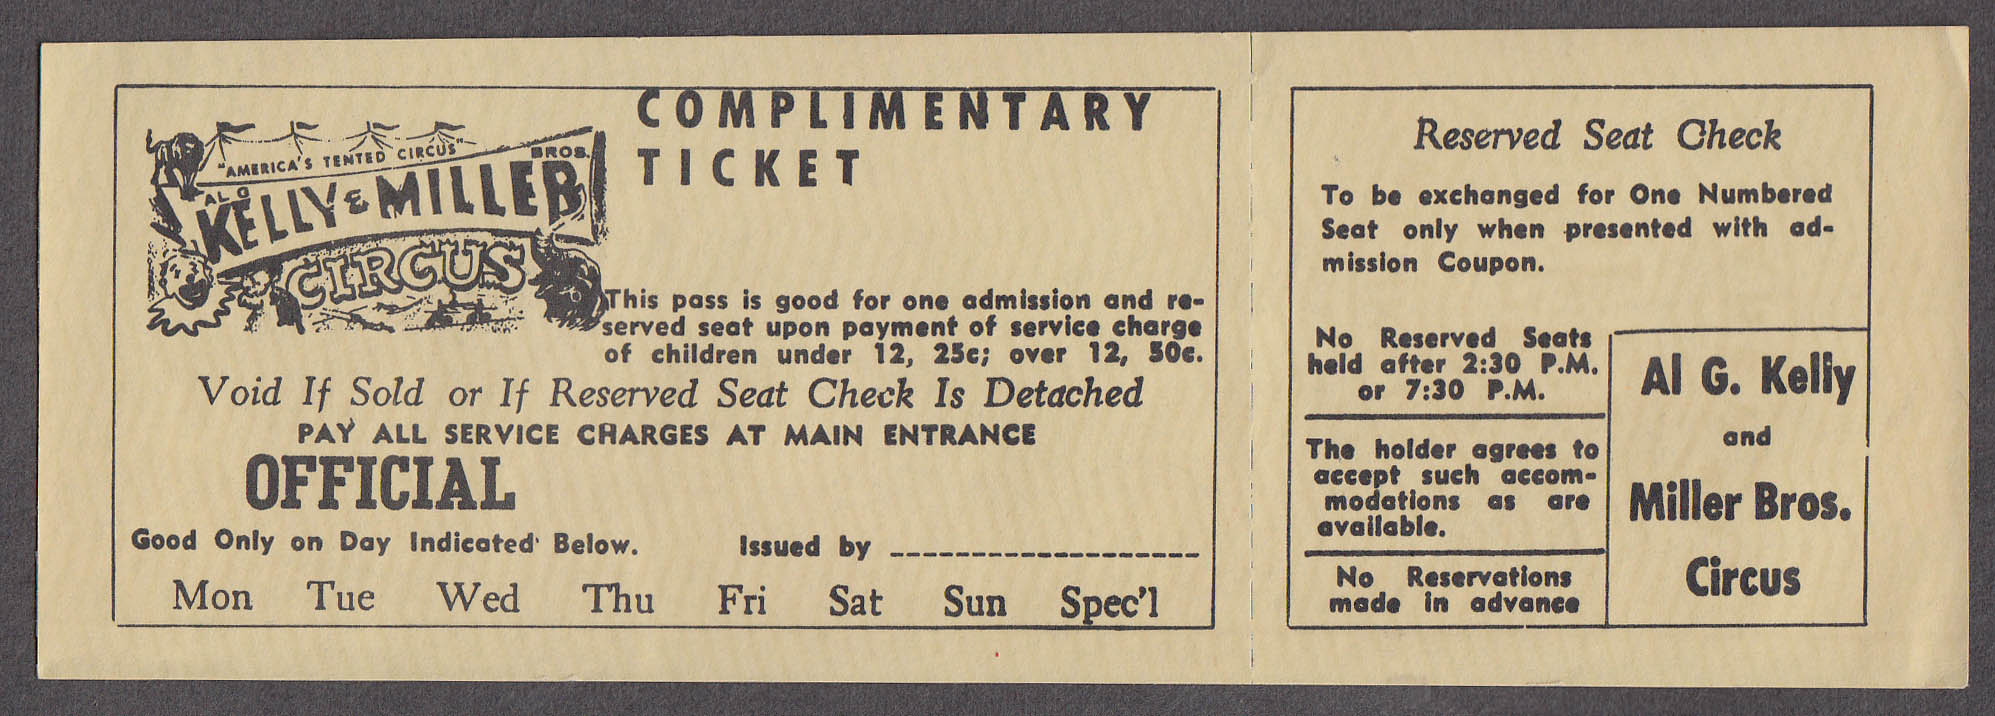 Image for Al G Kelly & Miller Bros circus ticket Complimentary Reserved Seat Check undated